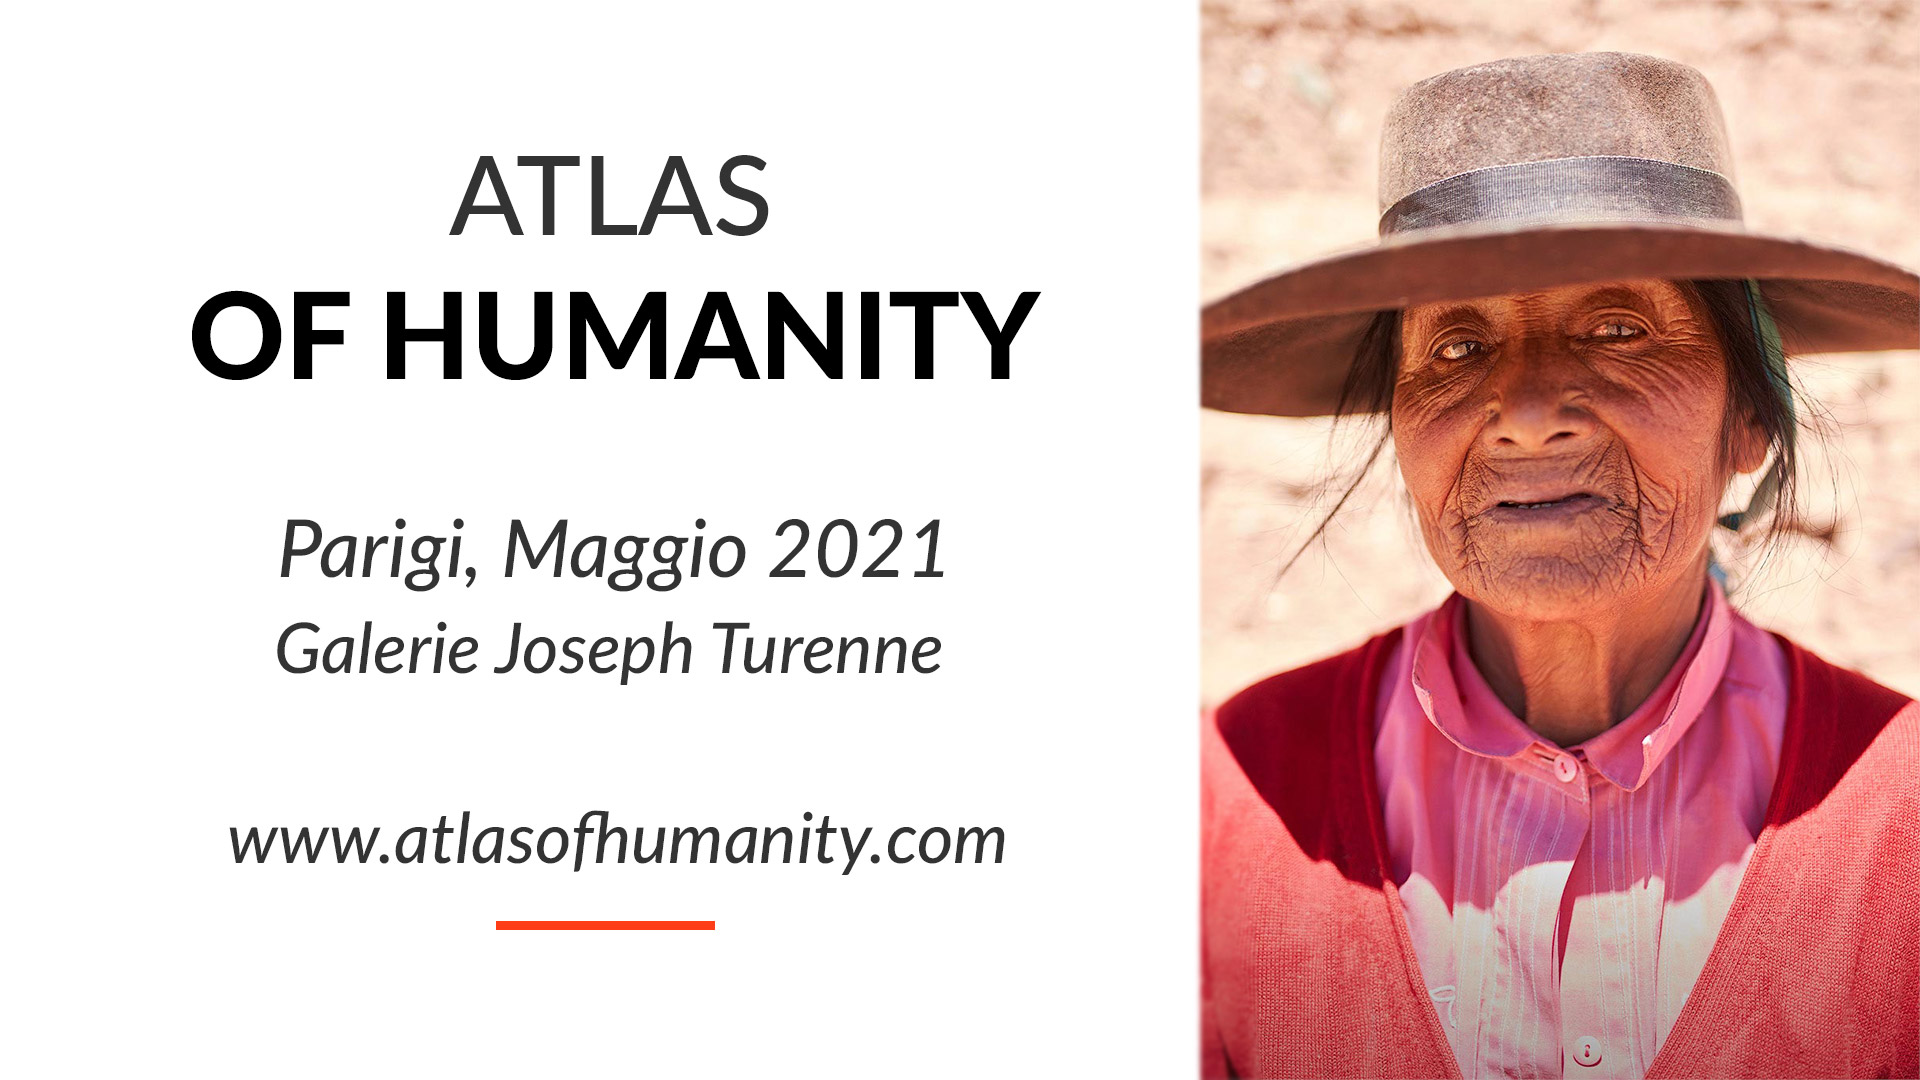 atlas of humanity parigi